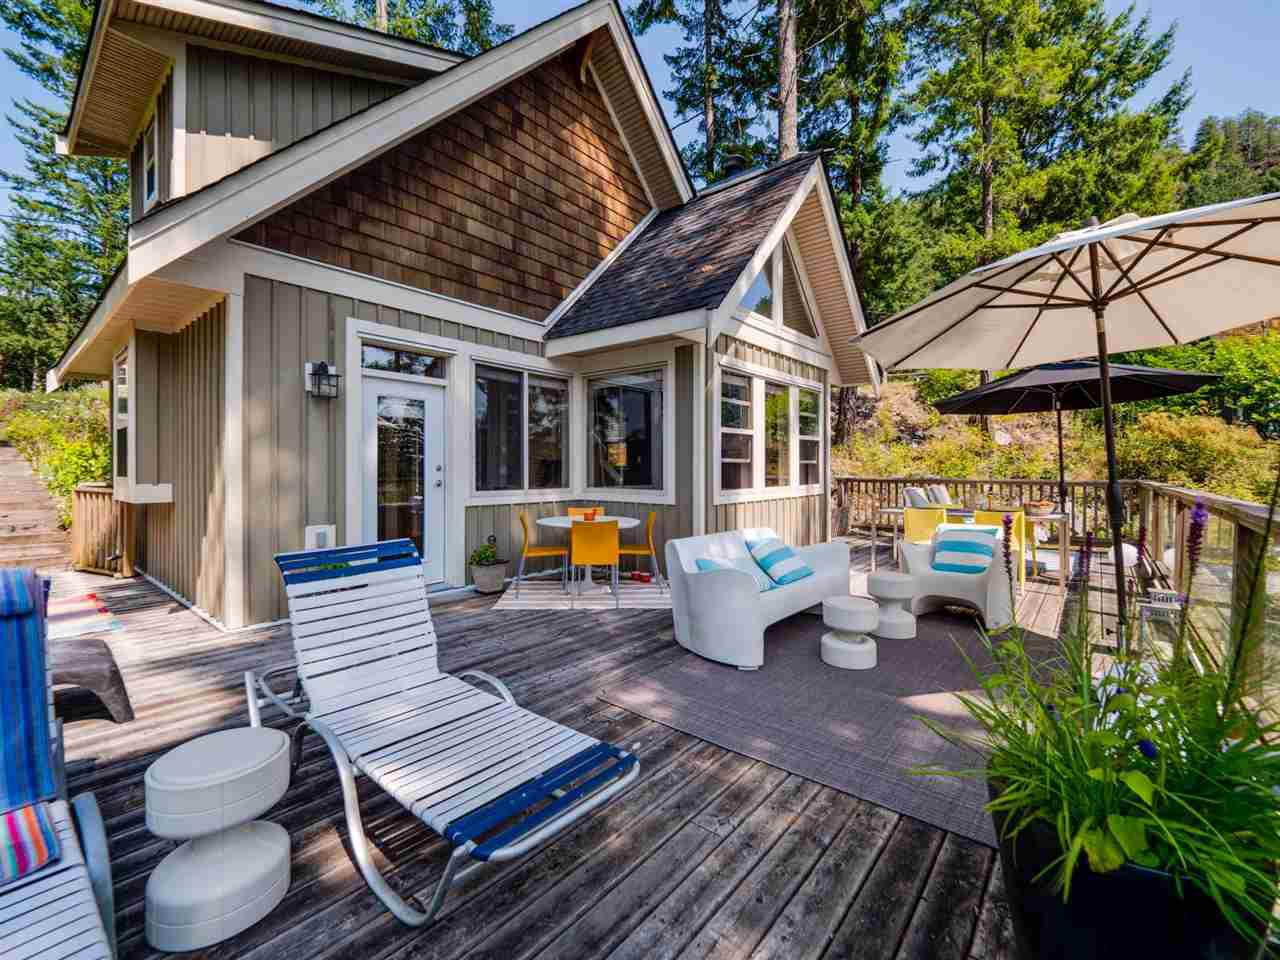 This home has a large entertainment deck to enjoy the view and nature at its best with all the mature trees around it.